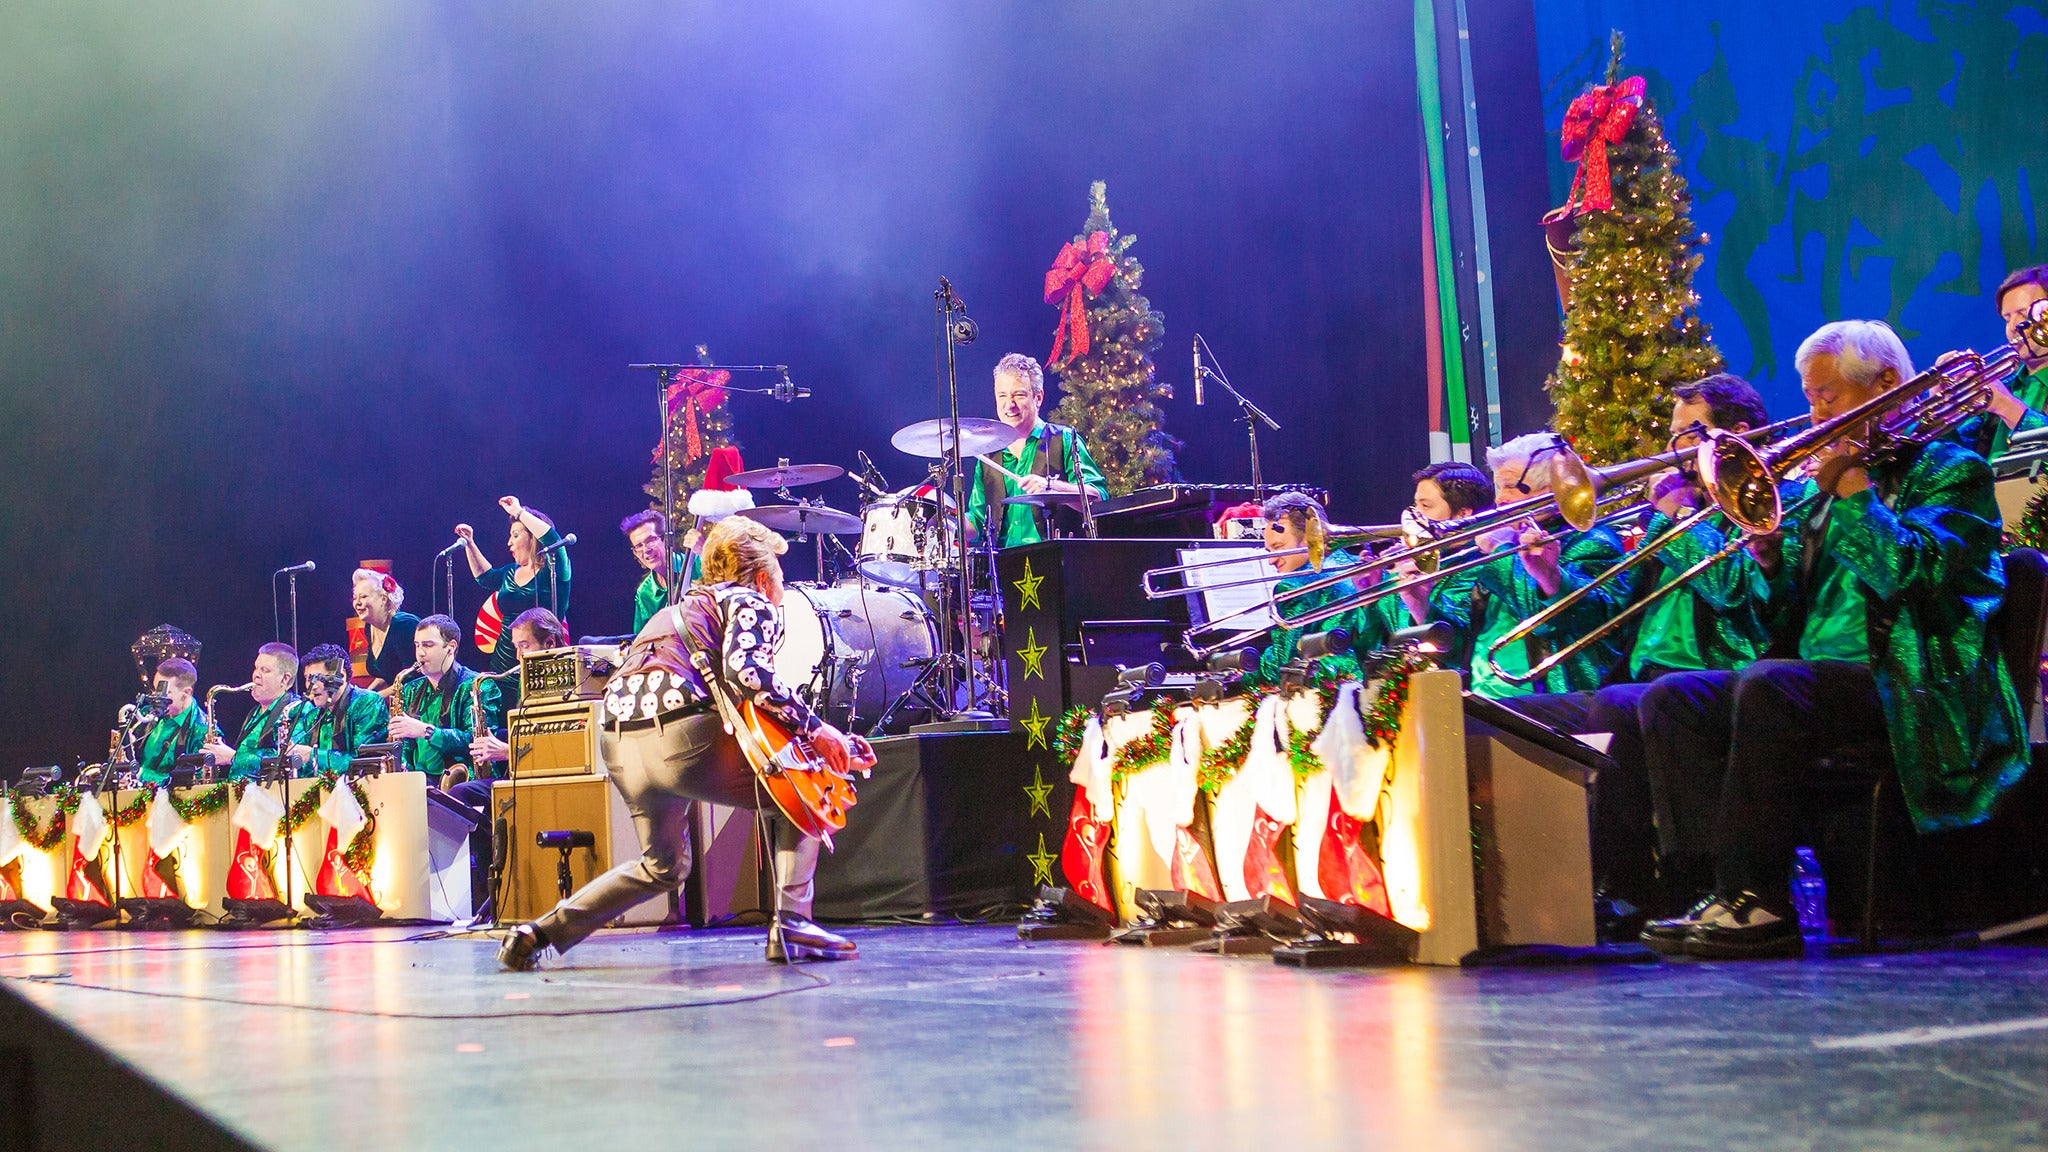 SiriusXM presents The Brian Setzer Orchestra Christmas Tour